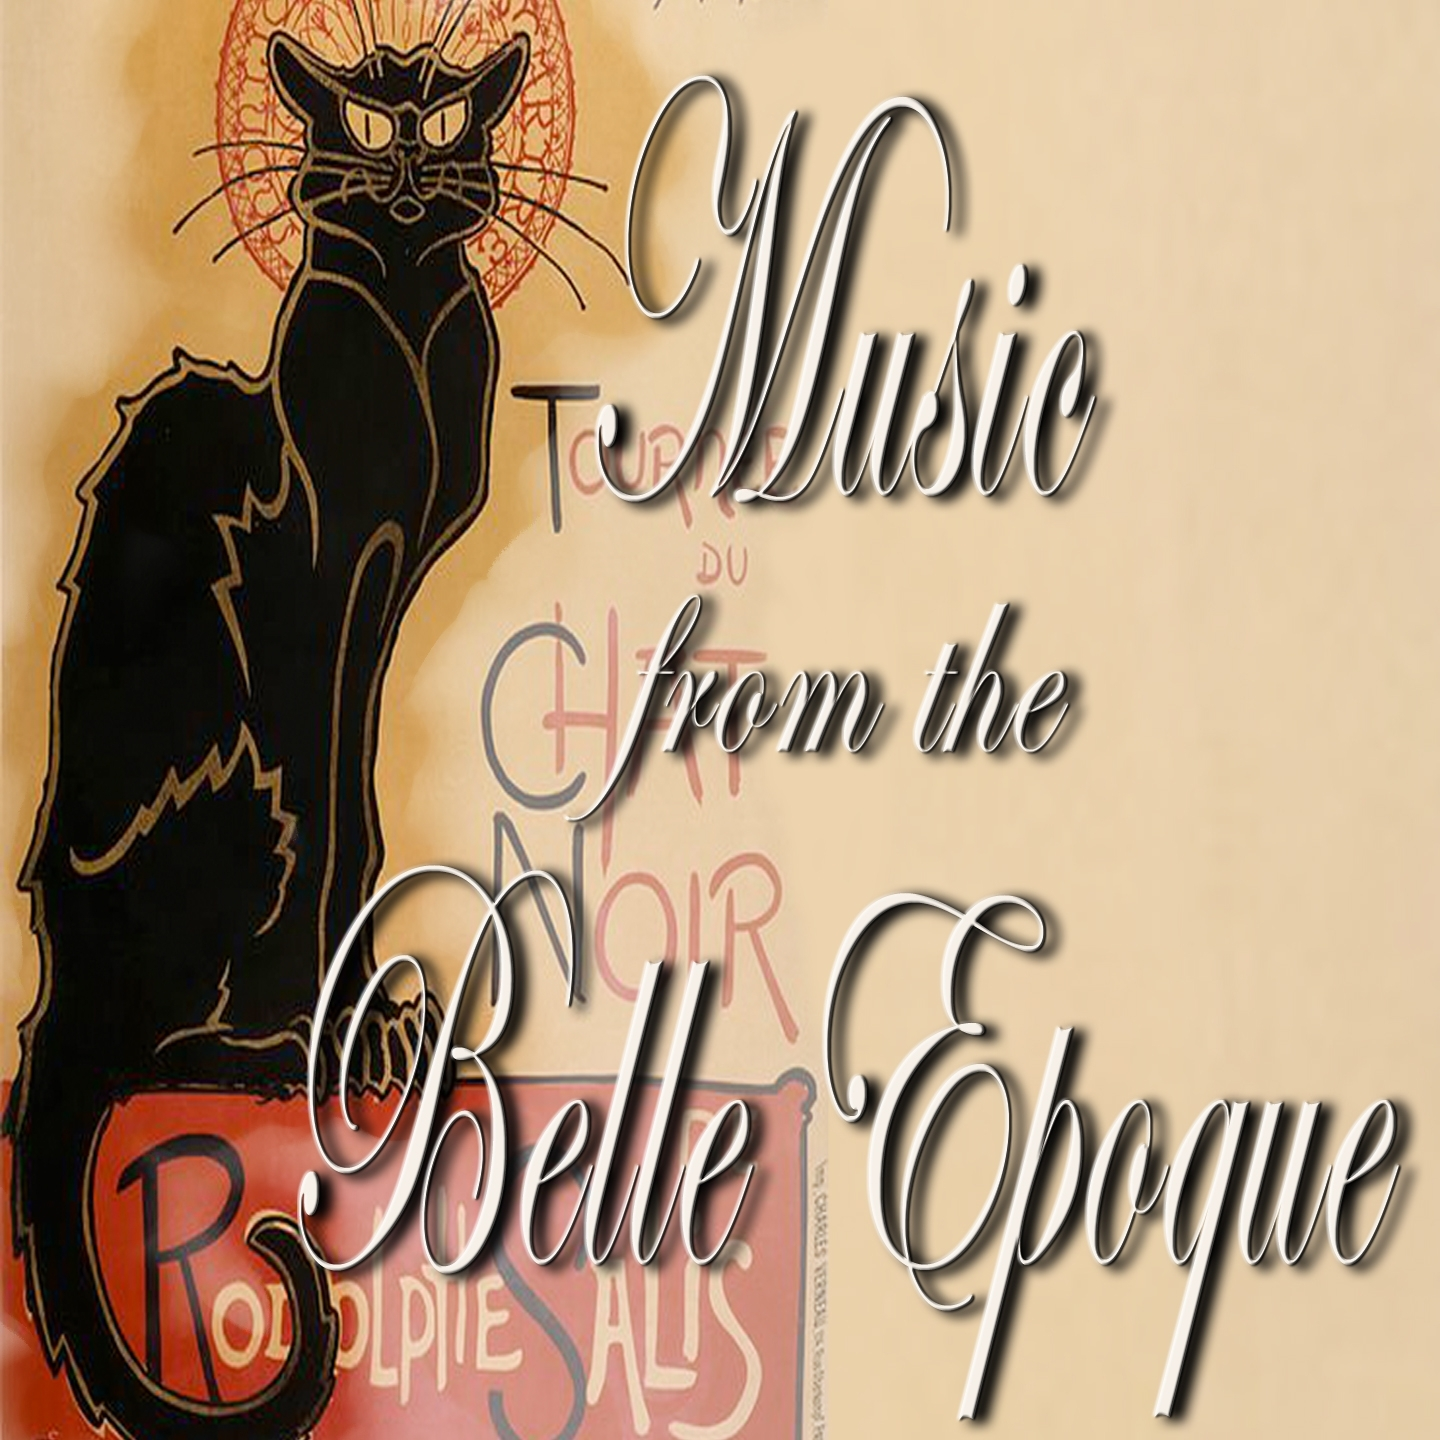 Music from the Belle Epoque